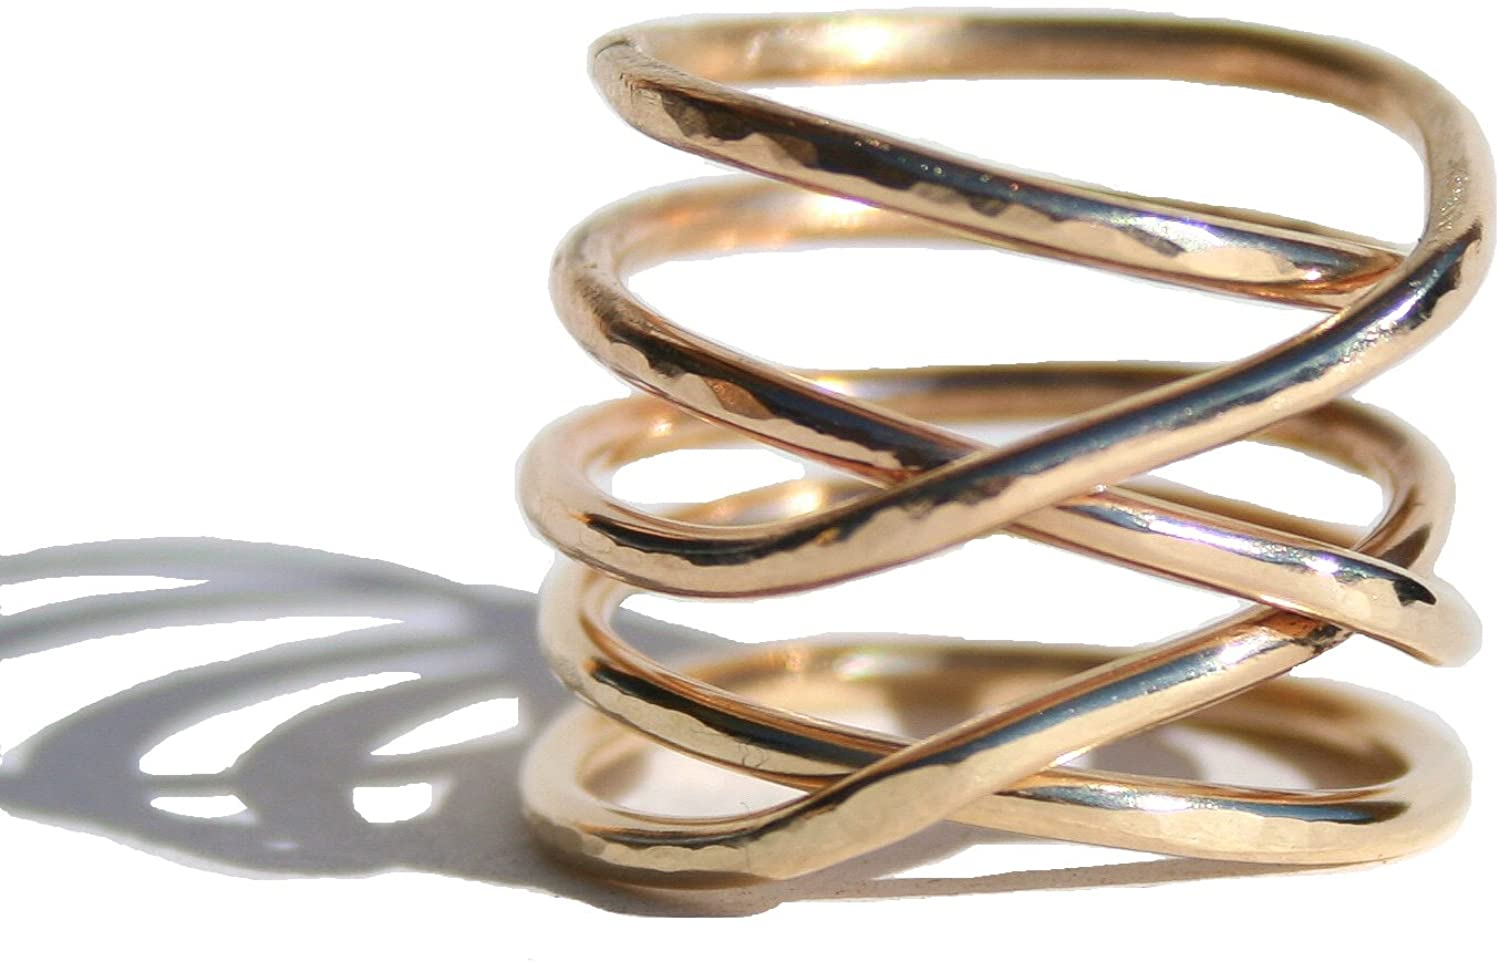 Isabella and Max 14k Gold Filled Twisted Ring - Thick Hammered Stacking Ring